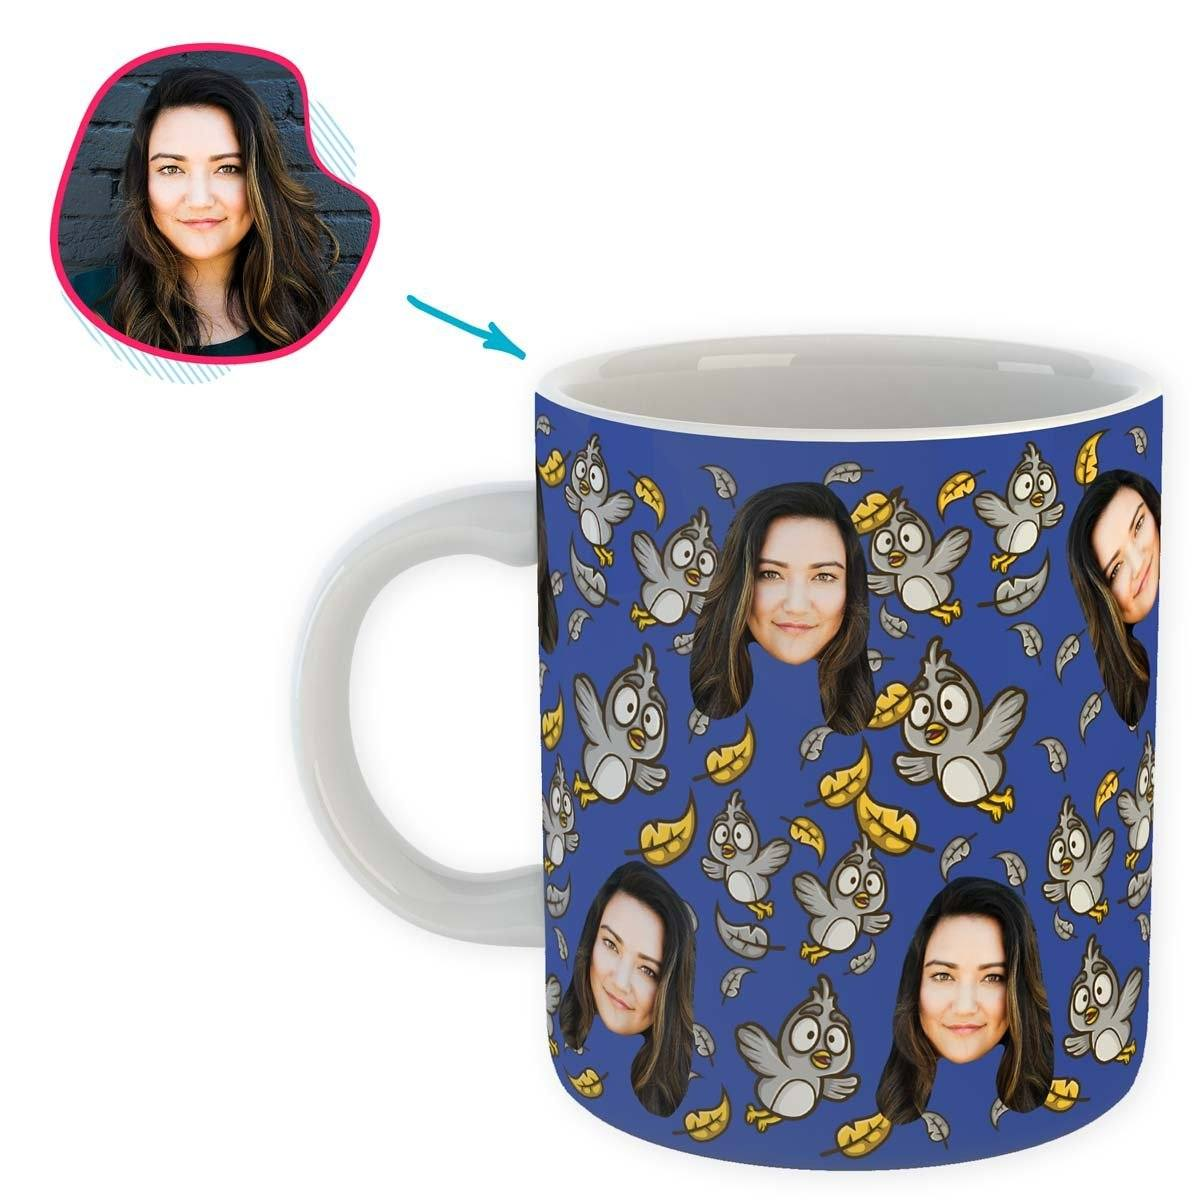 darkblue Bird mug personalized with photo of face printed on it